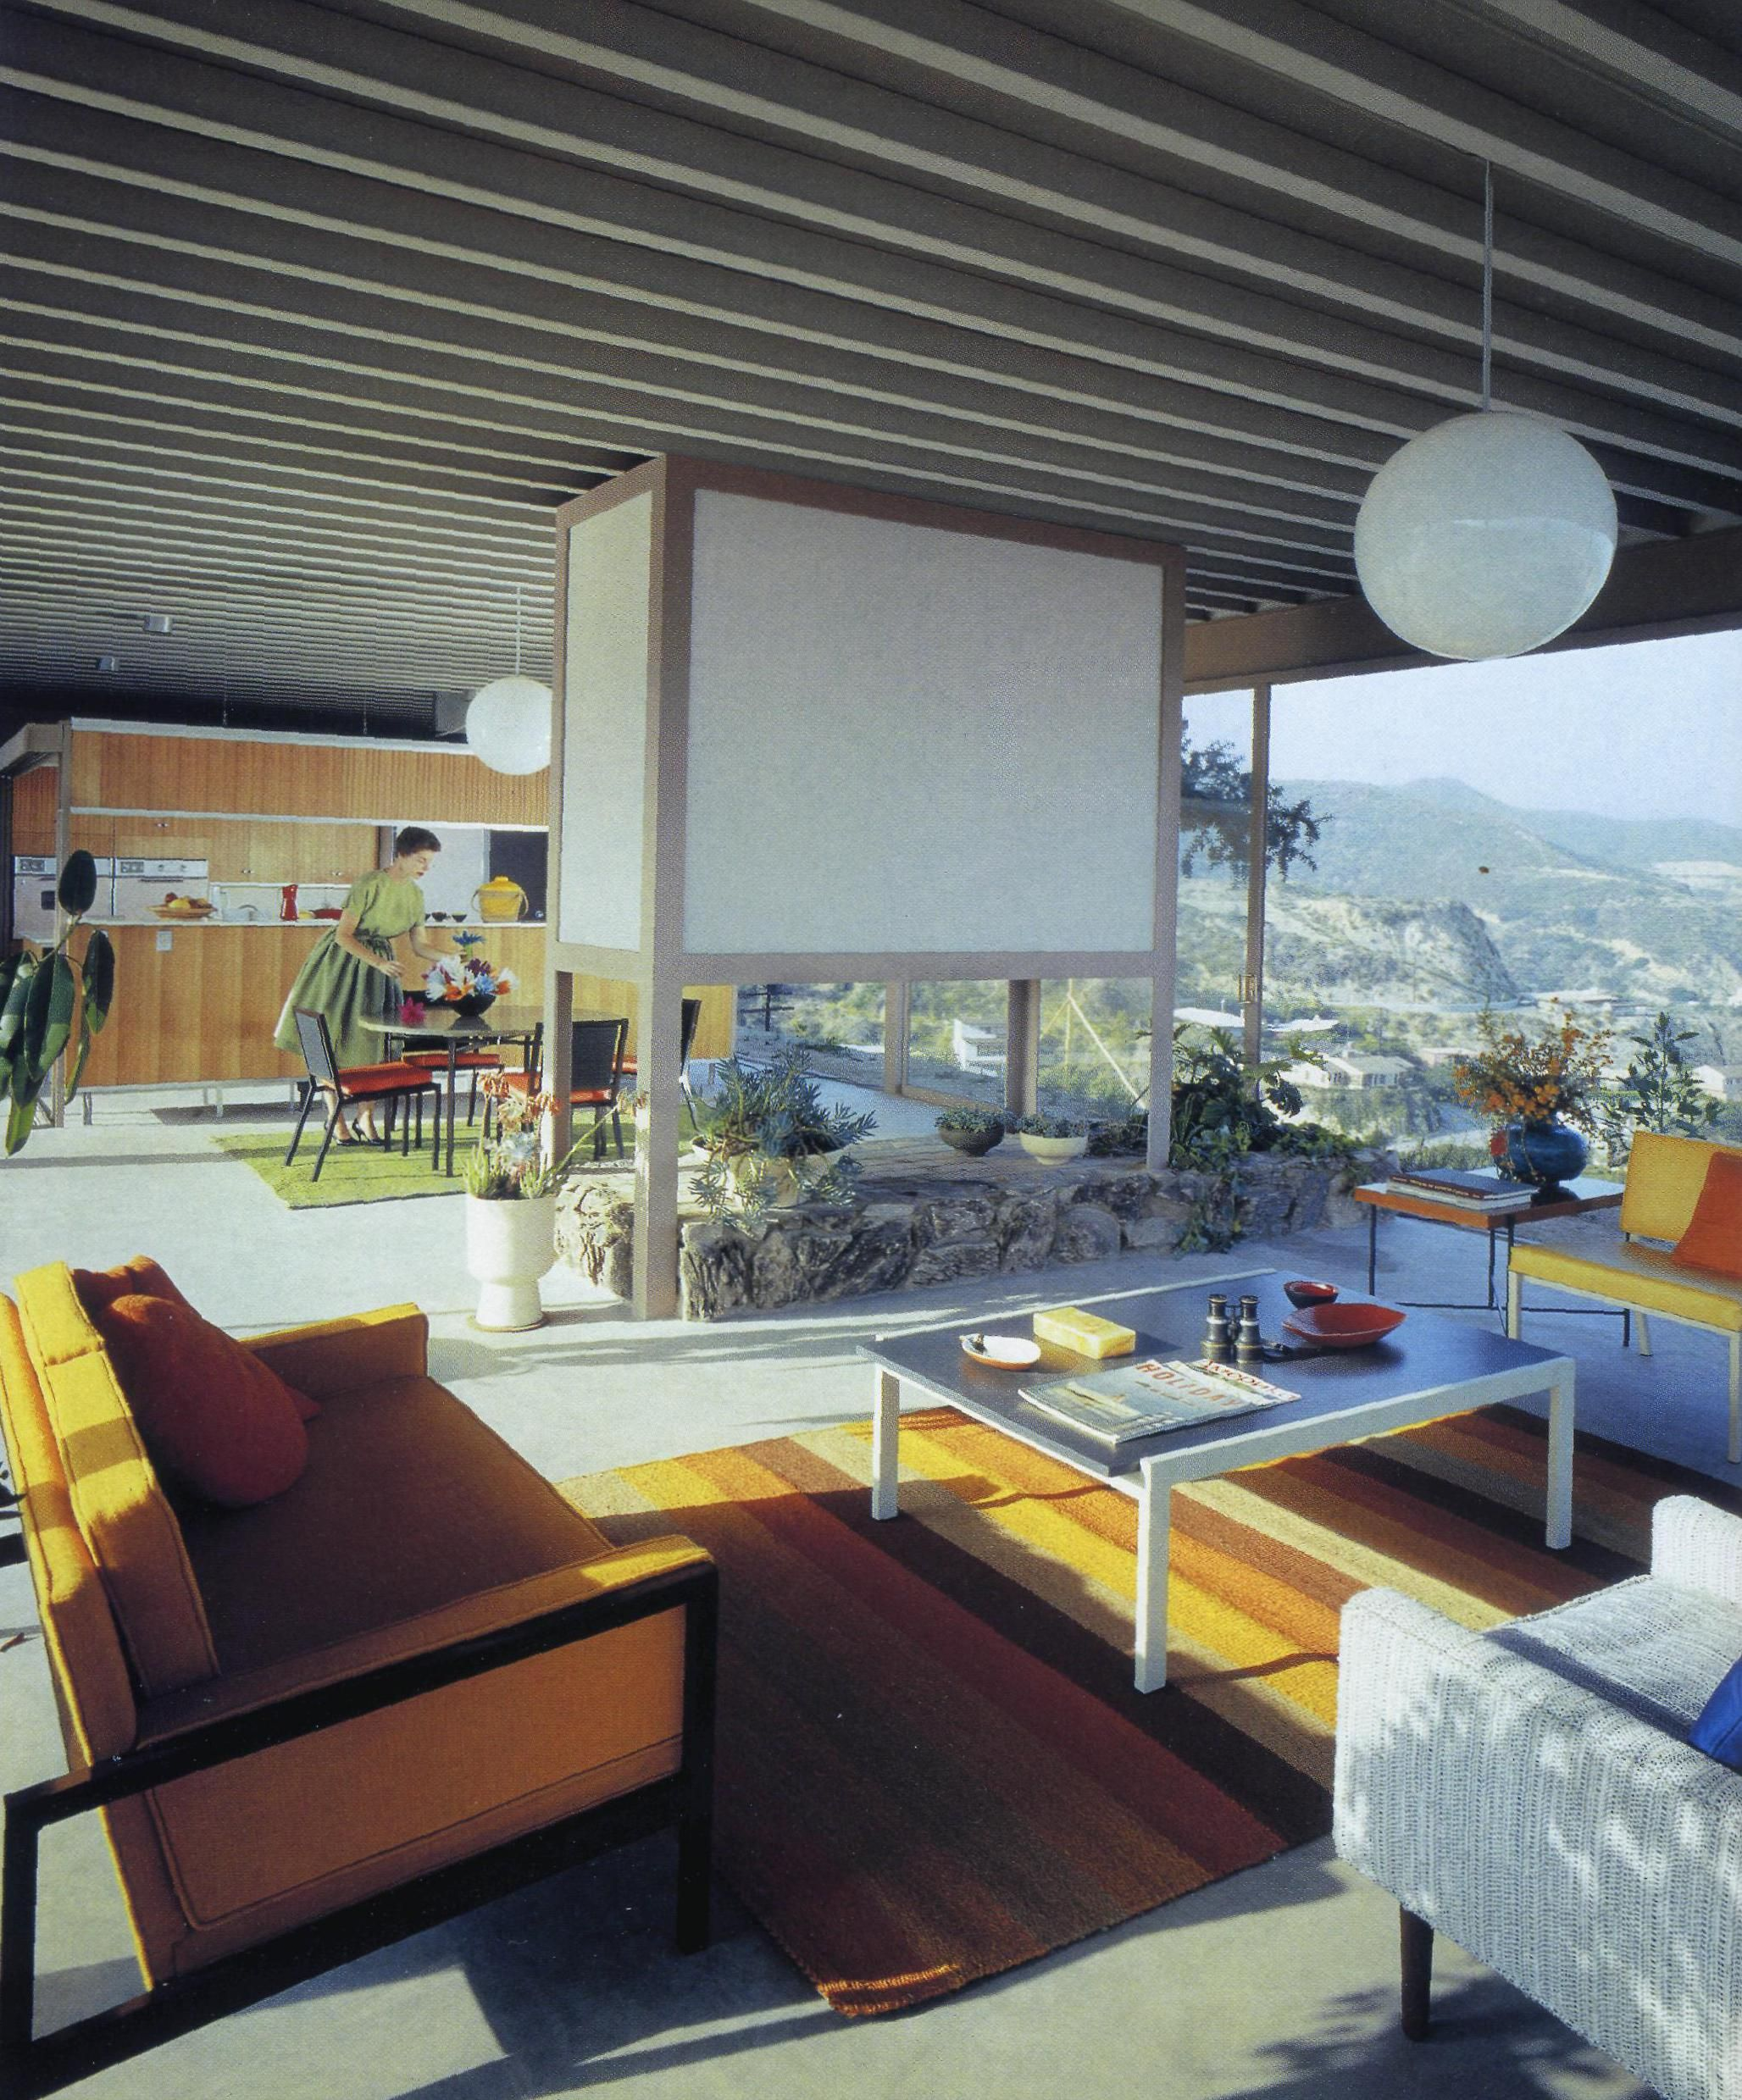 51 Modern Living Room Design From Talented Architects: Stahl House, Aka Case Study House #22, Hollywood Hills, CA